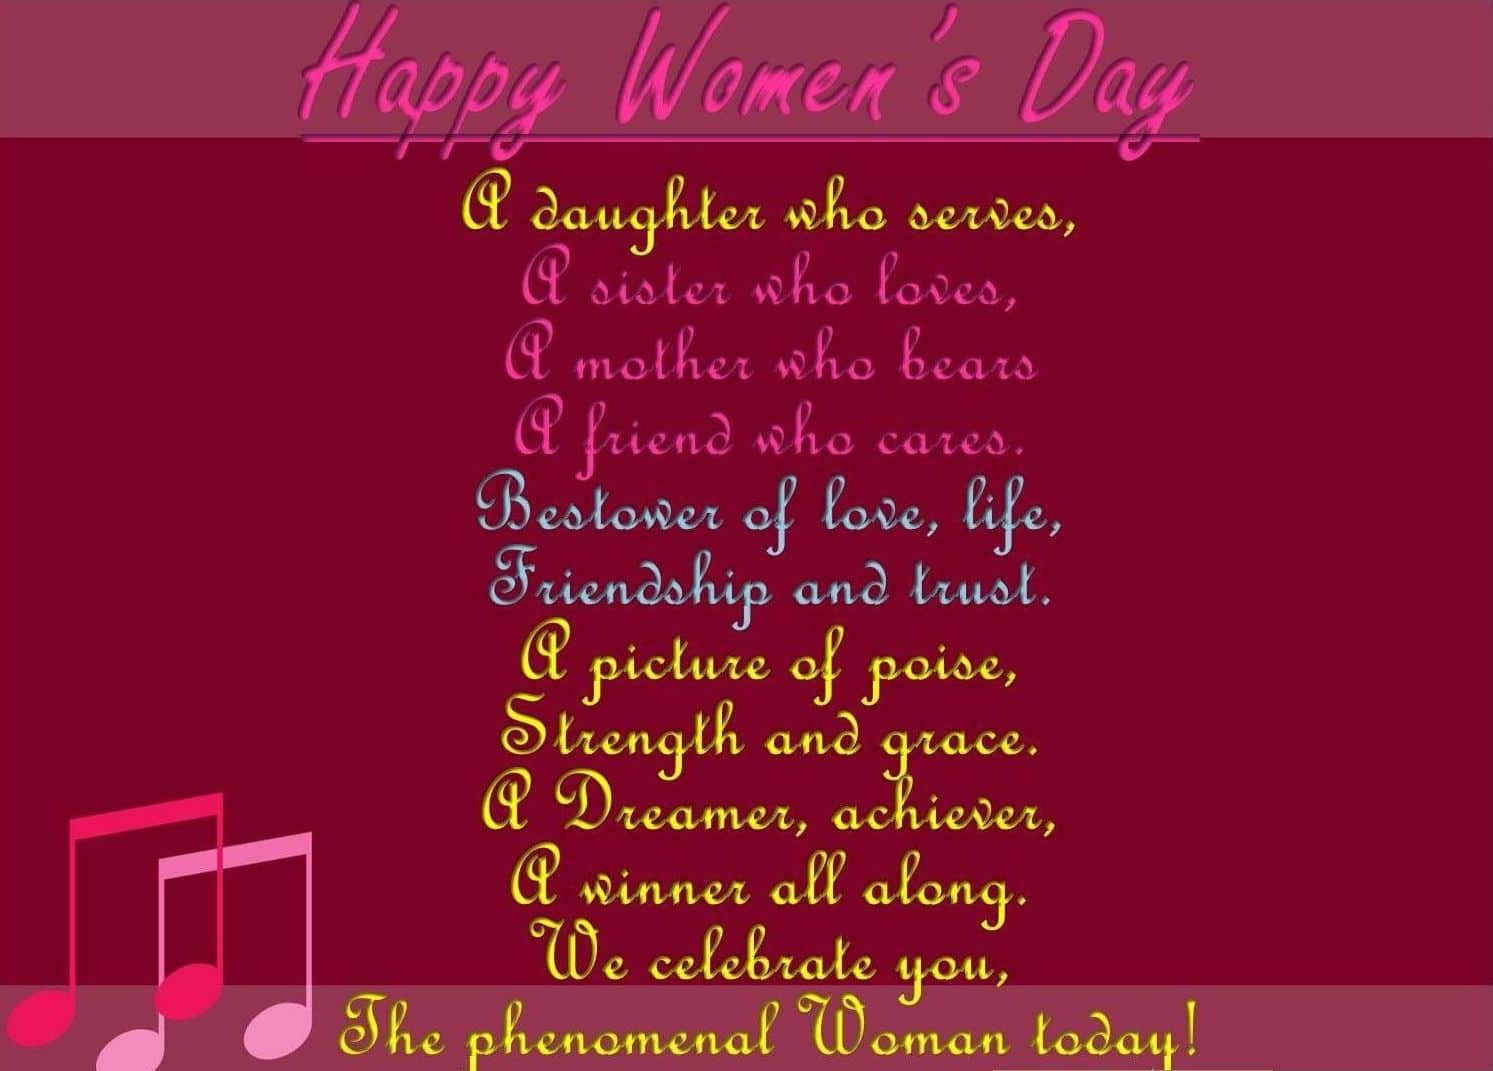 Happy Women's Day saying and lines for Her